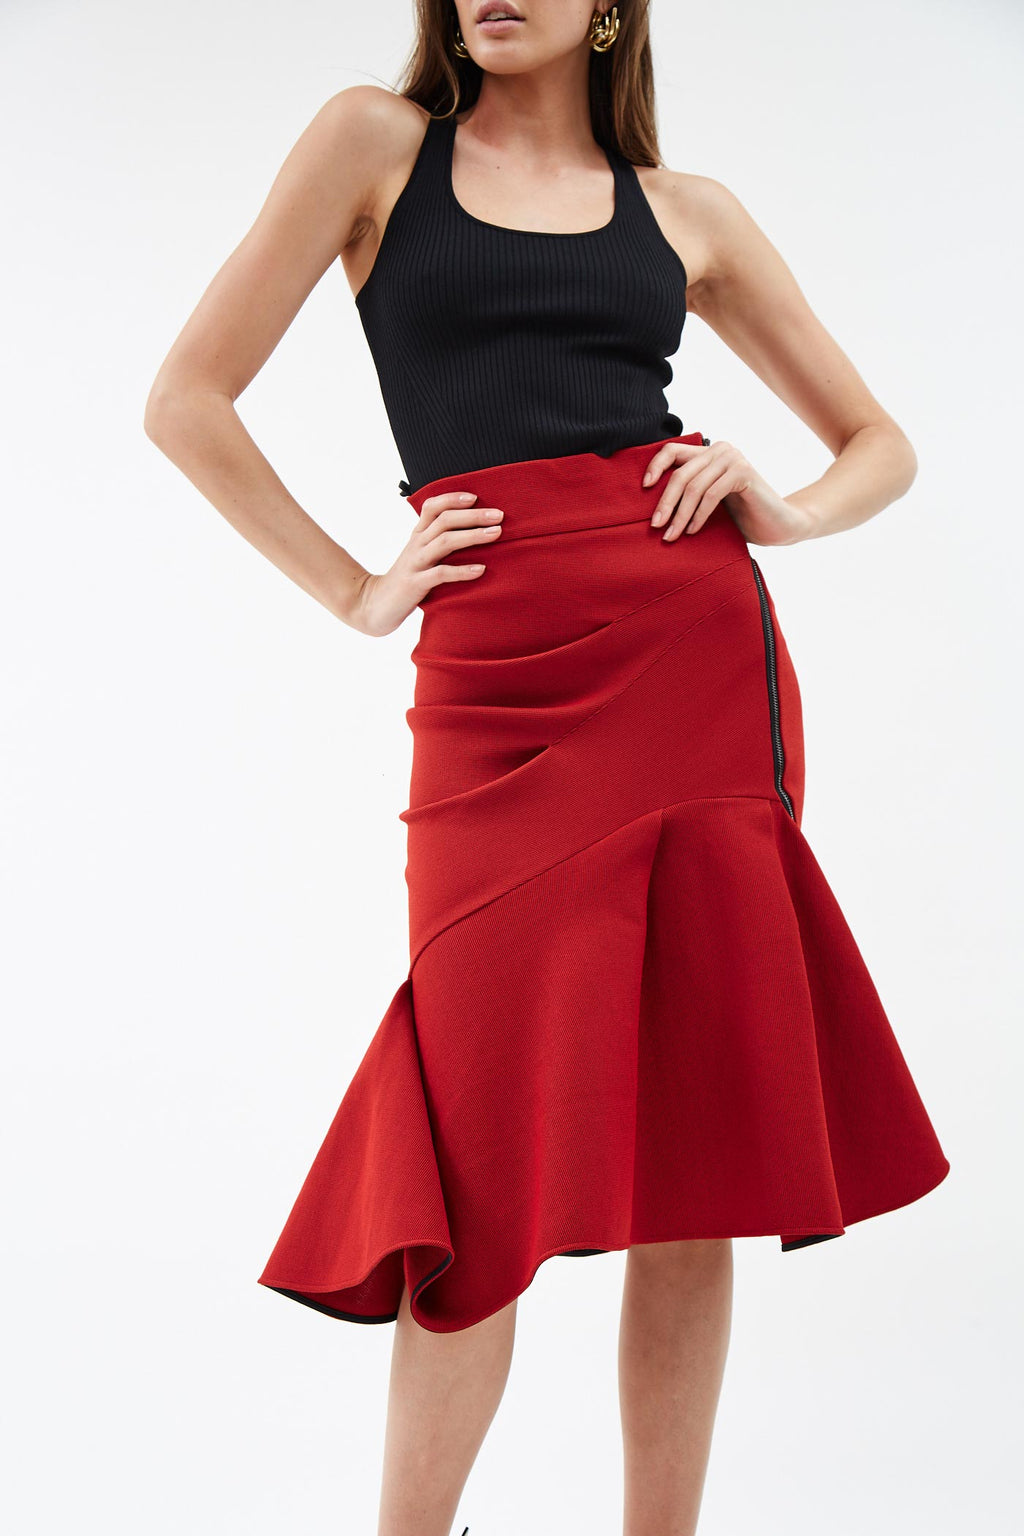 Quill Flame Skirt